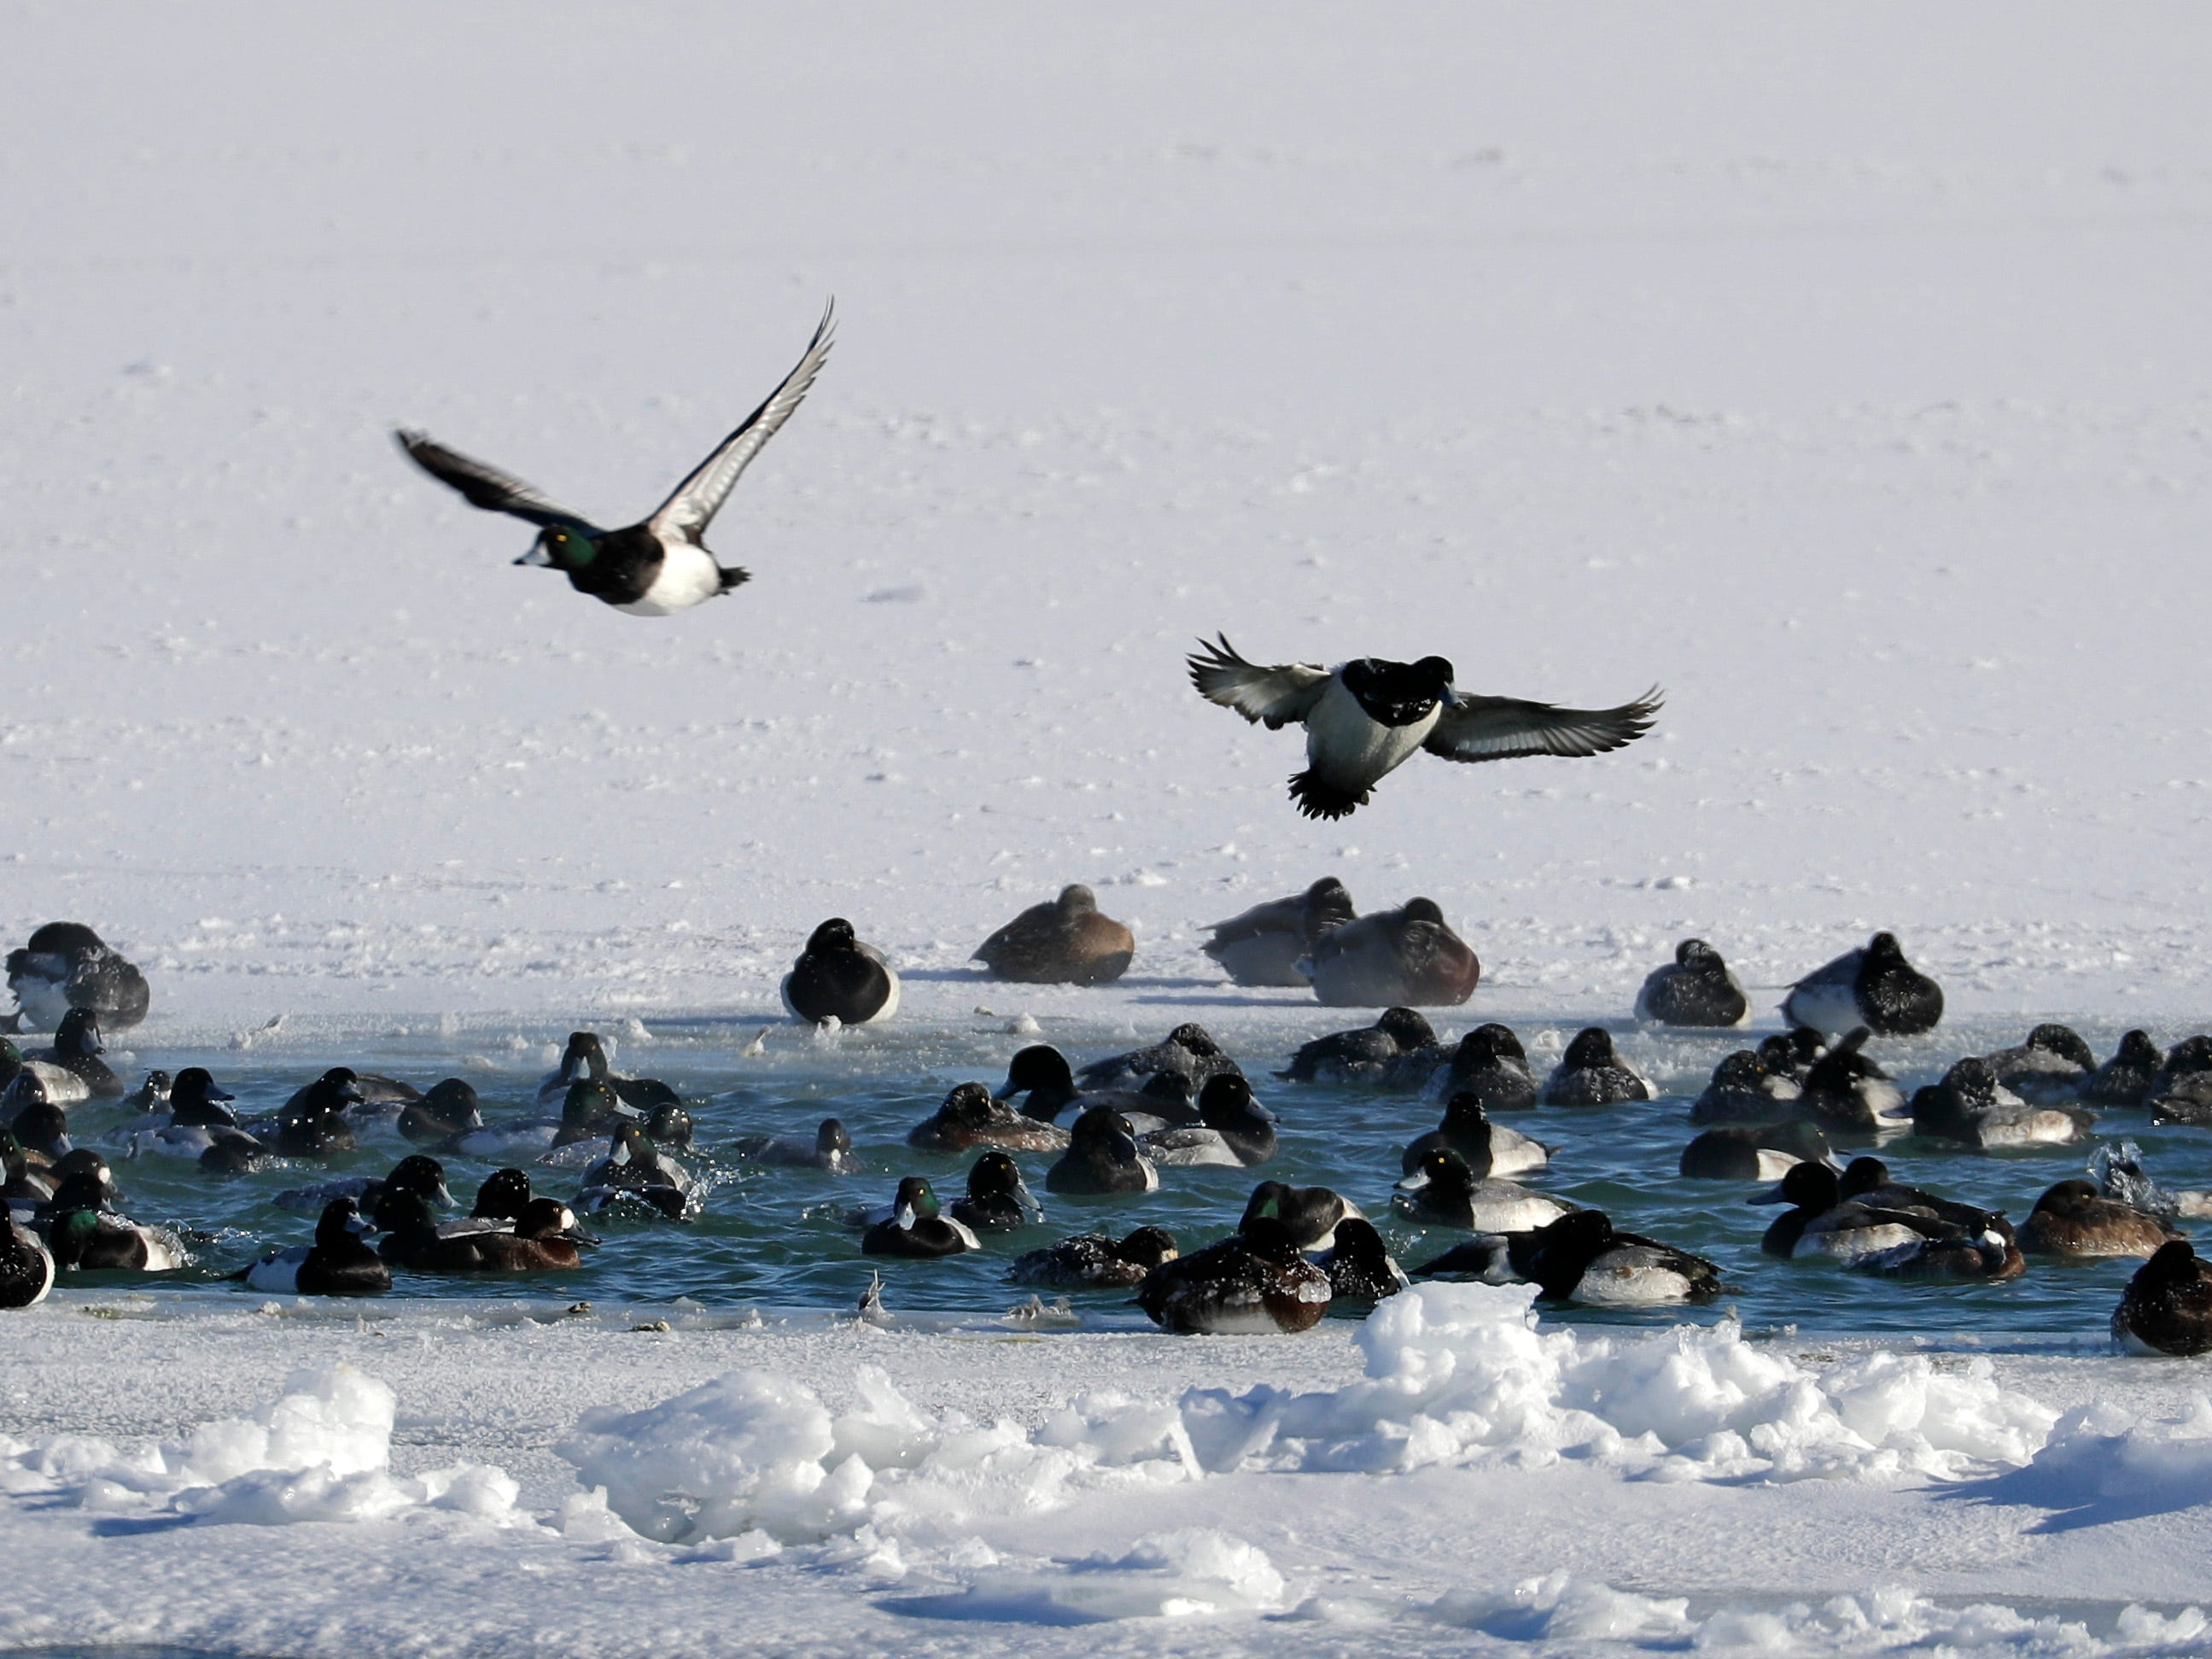 Ducks gather at a small warm patch of water at the mouth of the Milwaukee River where it empties into the harbor of Lake Michigan. A polar vortex brought extremely cold weather to Milwaukee with temperatures in the minus 20s and wind chills between 40 below and 50 below over the next 24 hours.